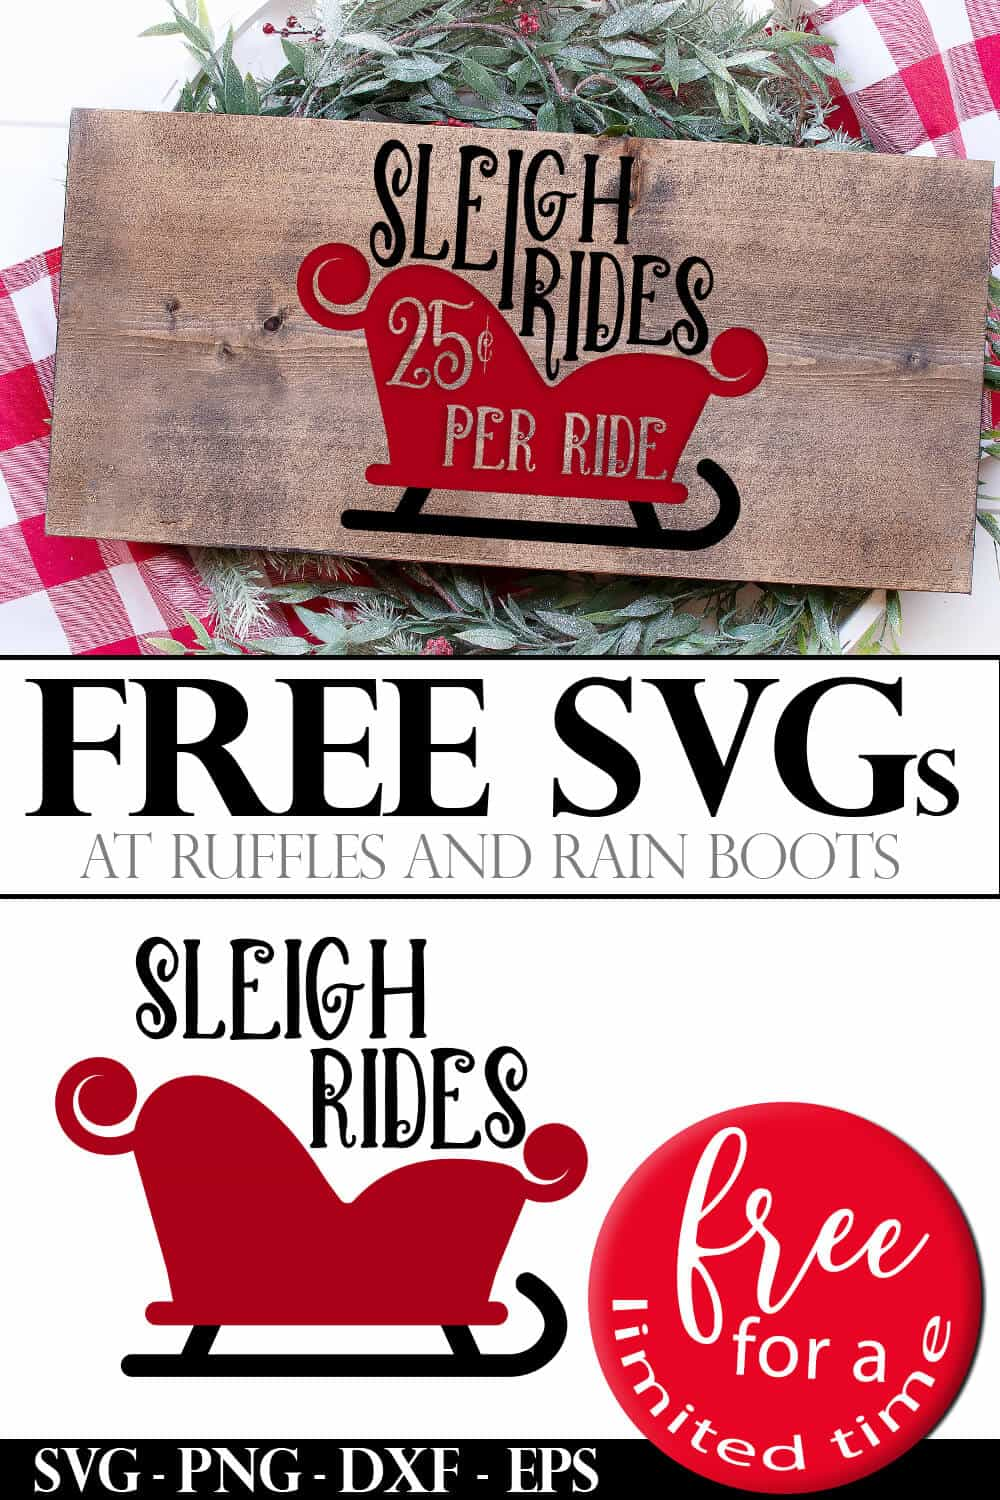 photo collage of sleigh rides free Christmas SVG with text which reads free svgs free for a limited time